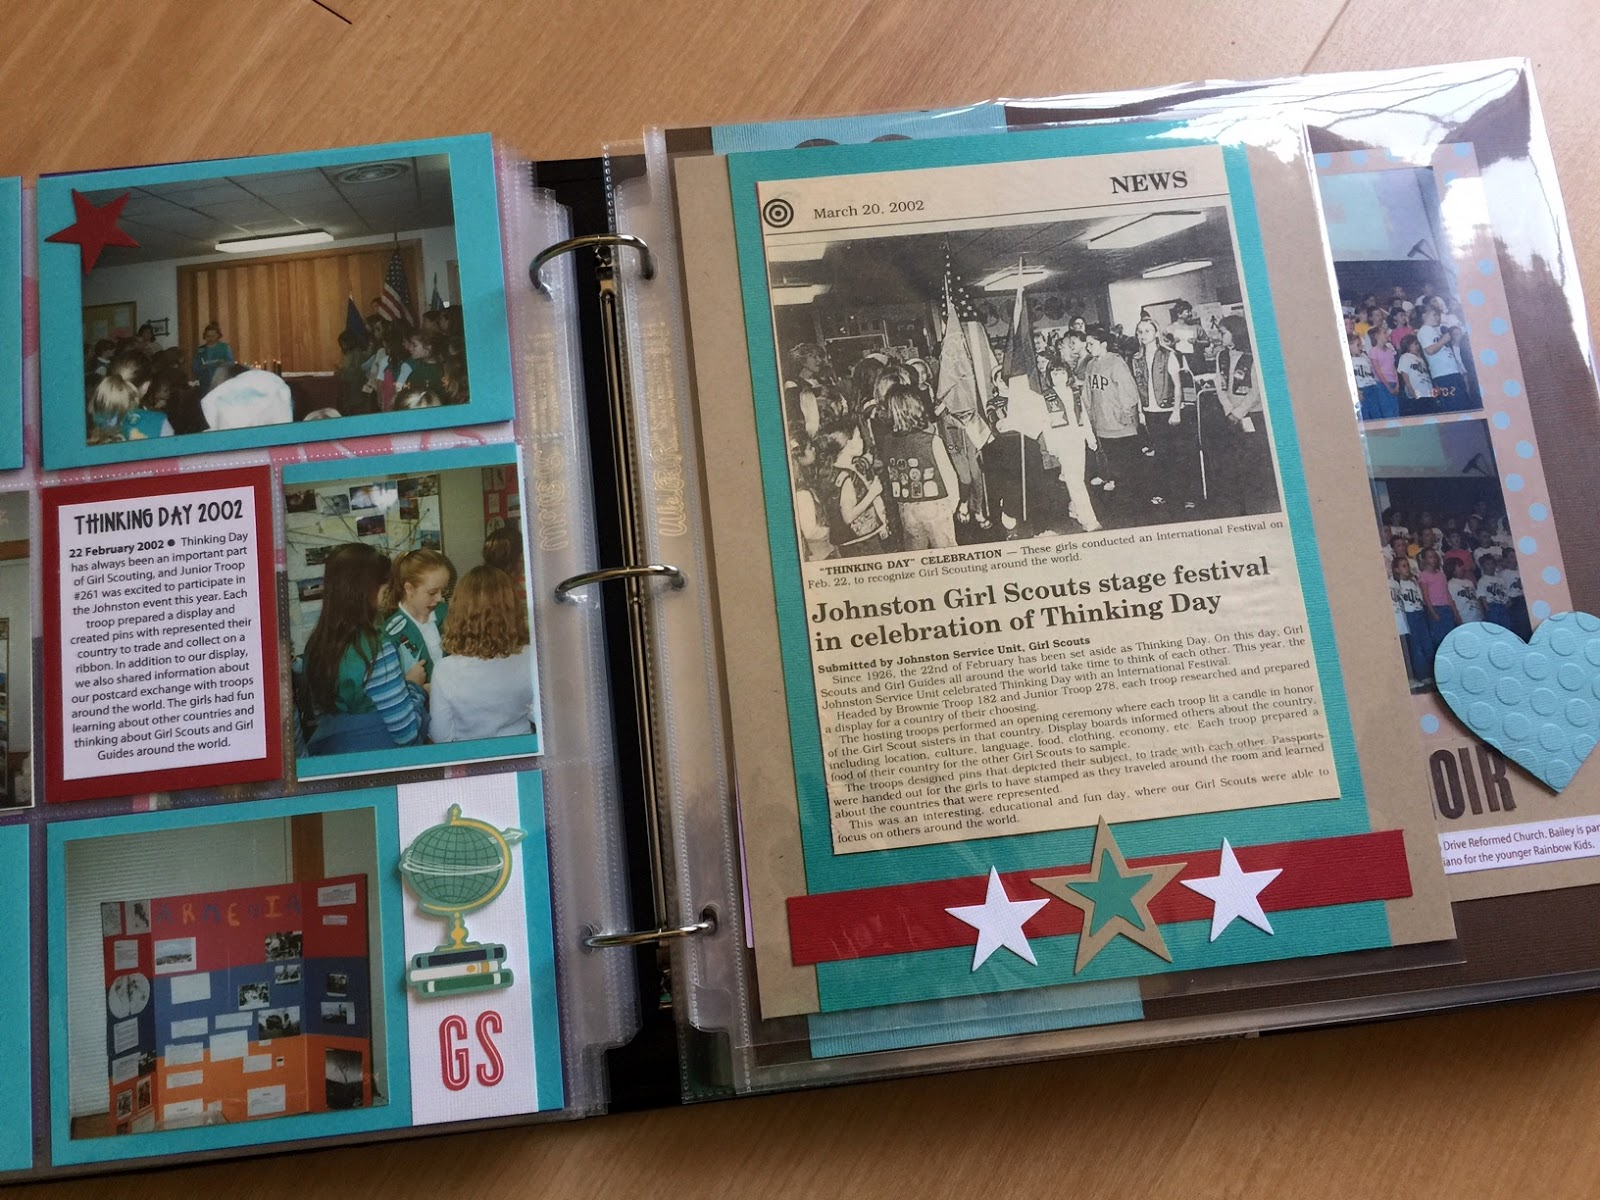 How to make scrapbook binder -  8 5 11 With Memorabilia And A 4 6 Pocket Page Filled With Iowa State Fair Programs And Such The Binders Make This Kind Of Scrapbooking So Easy